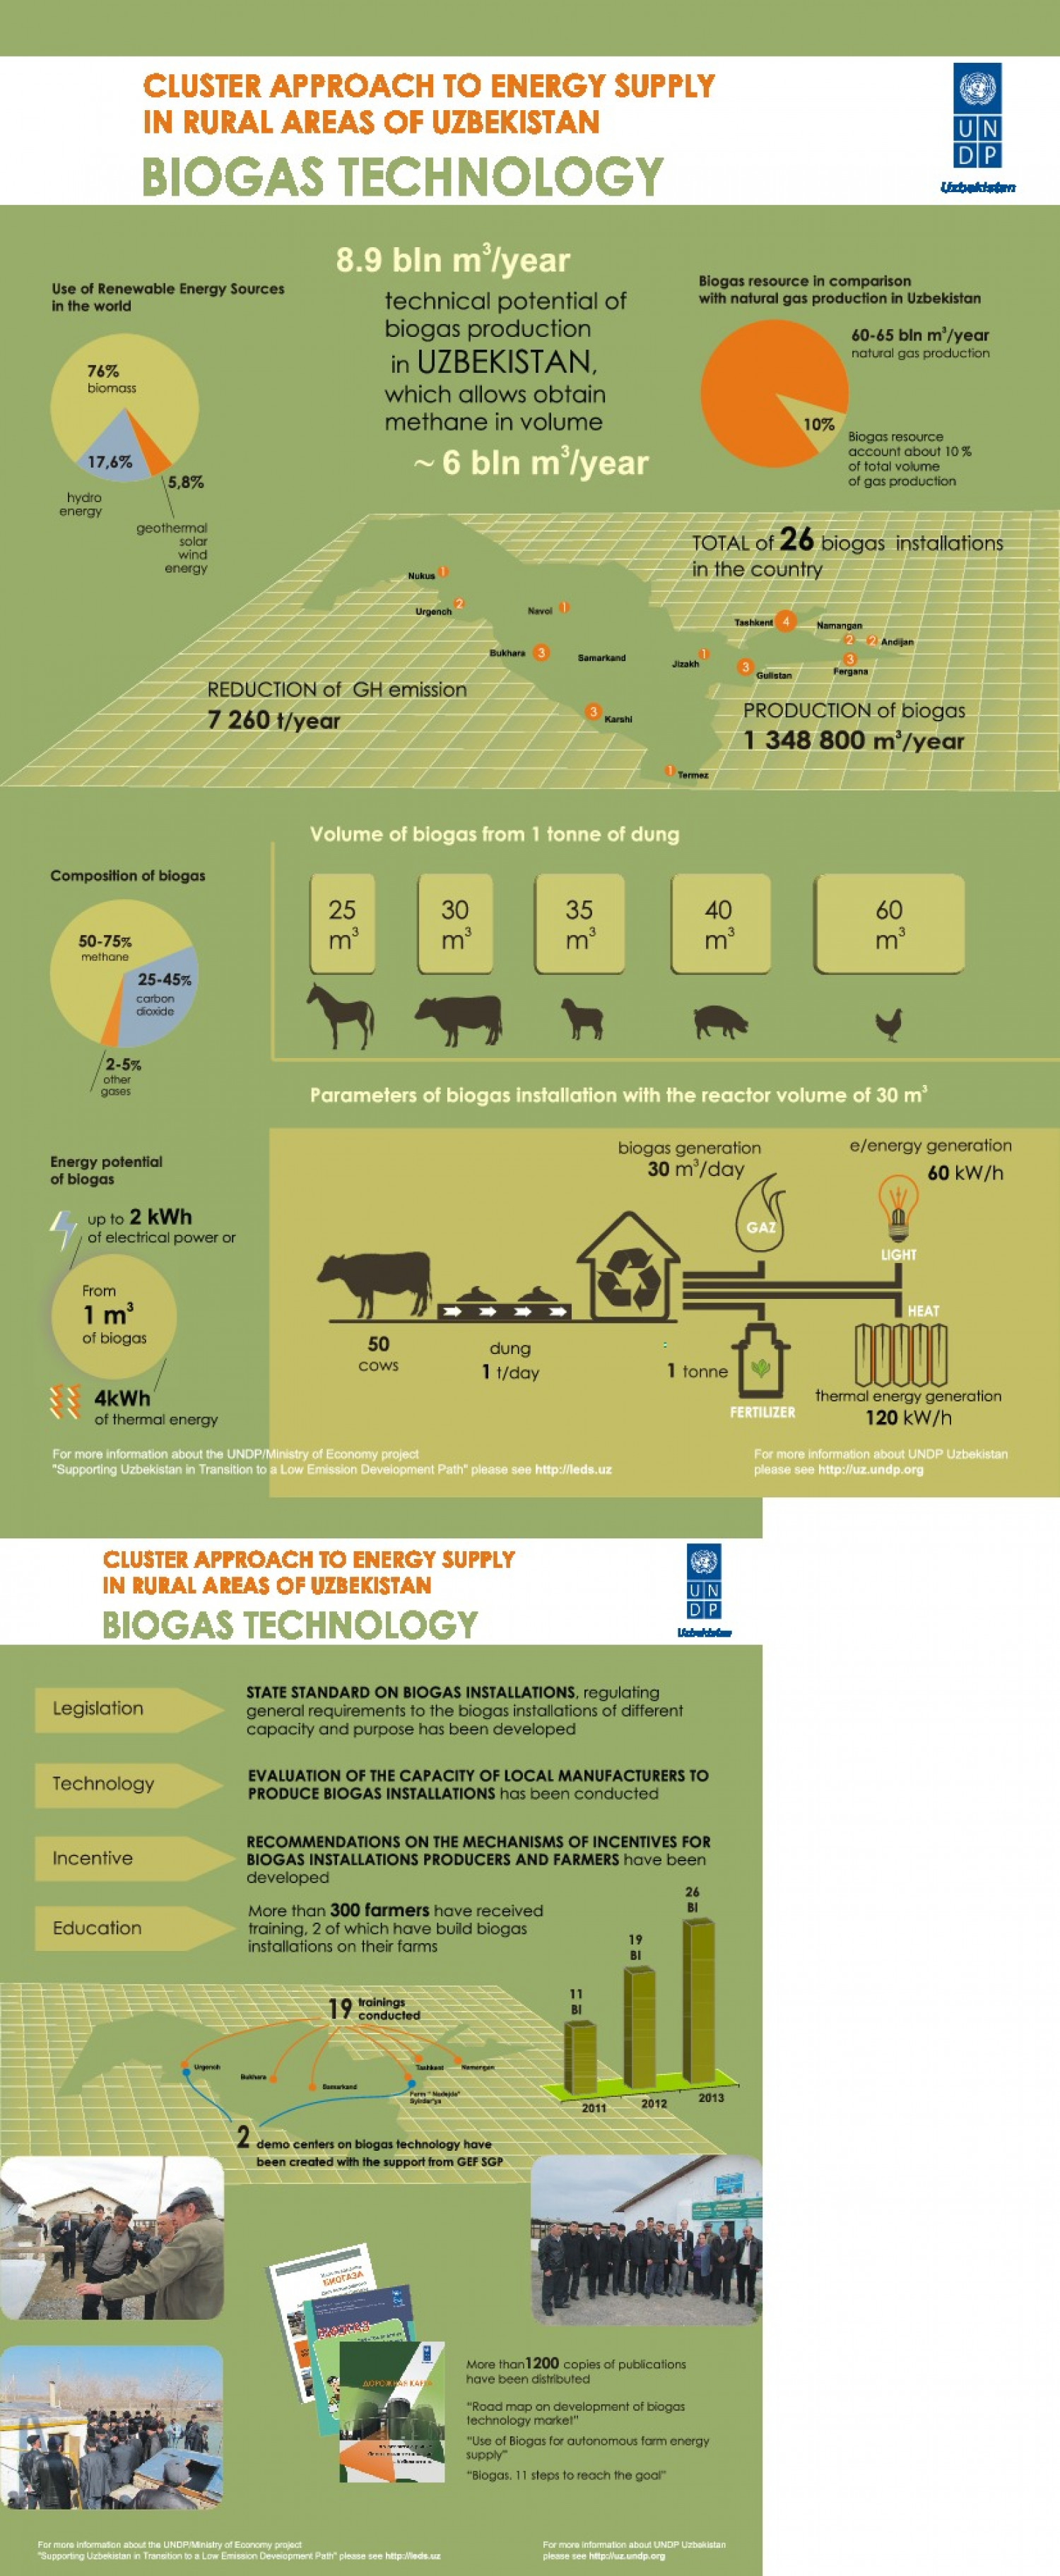 Cluster approach to energy supply in rural areas of Uzbekistan Infographic